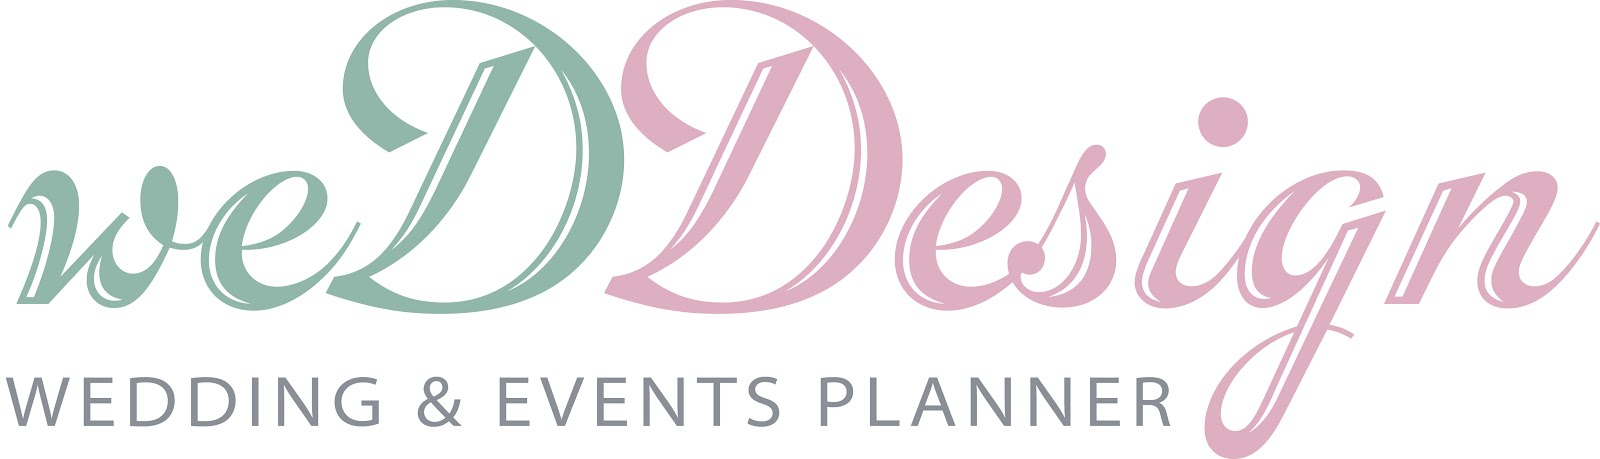 WedDesign - Wedding Planner